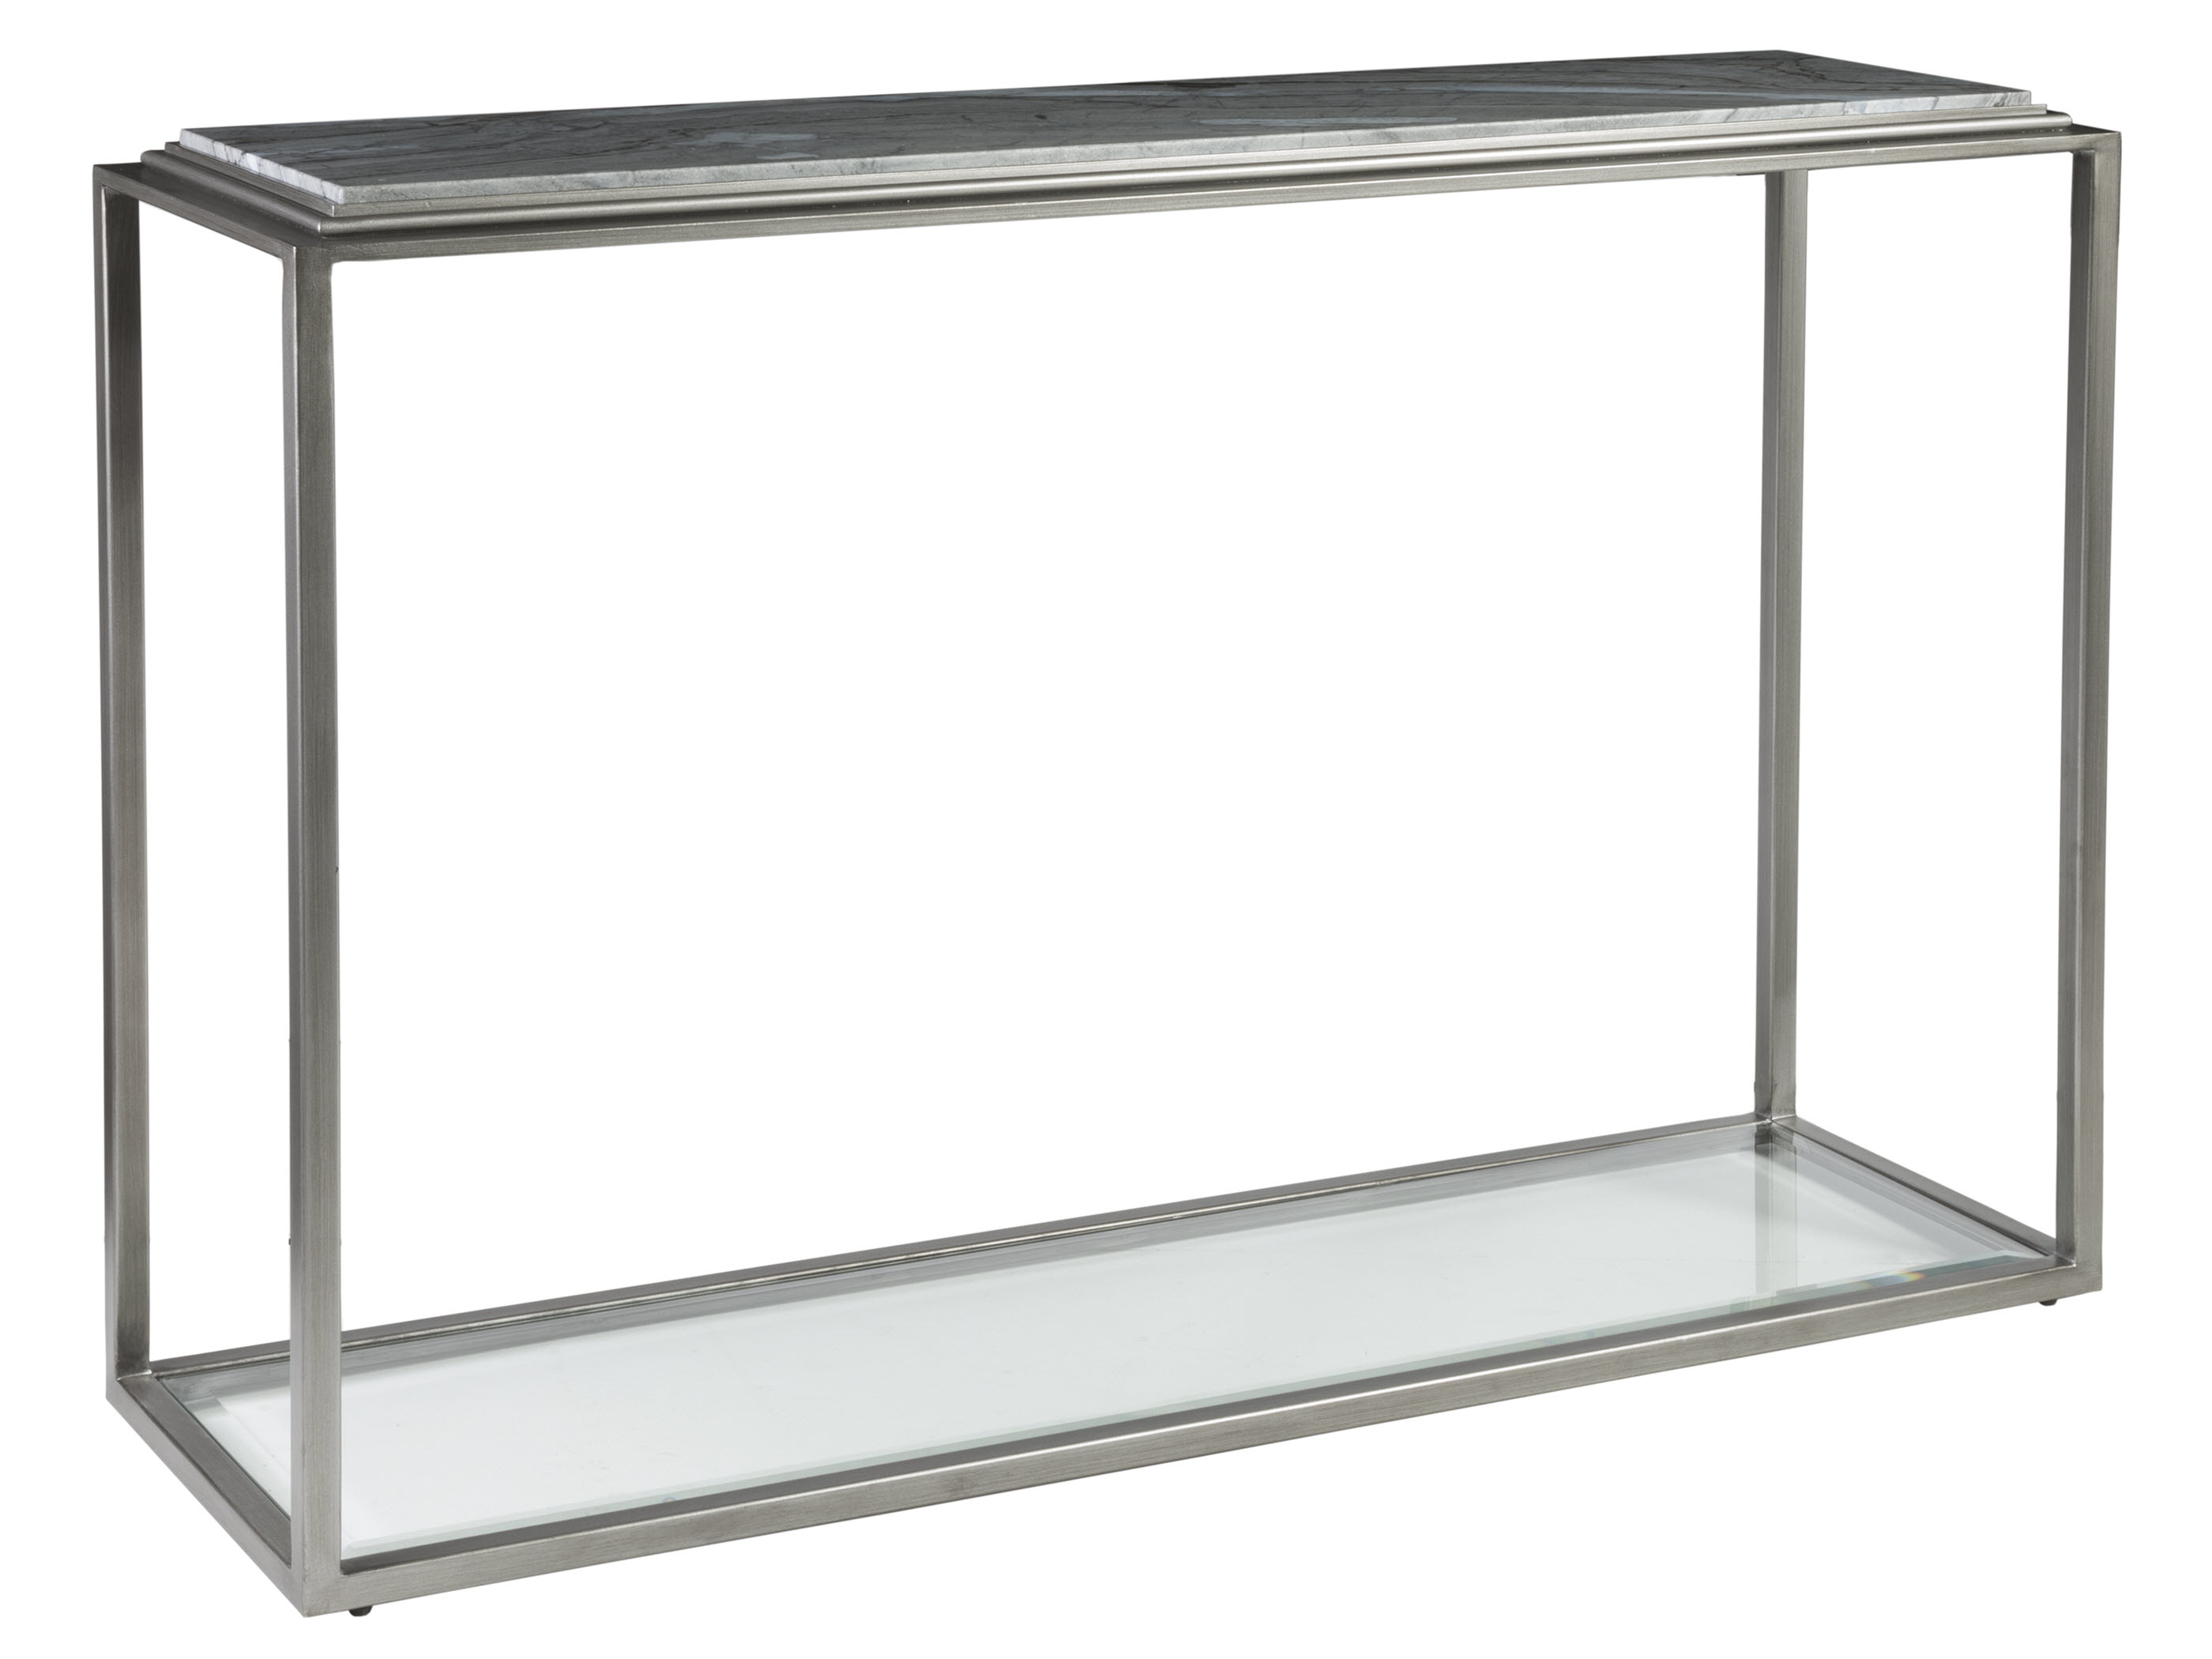 Treville Console Table by Artistica at Belfort Furniture